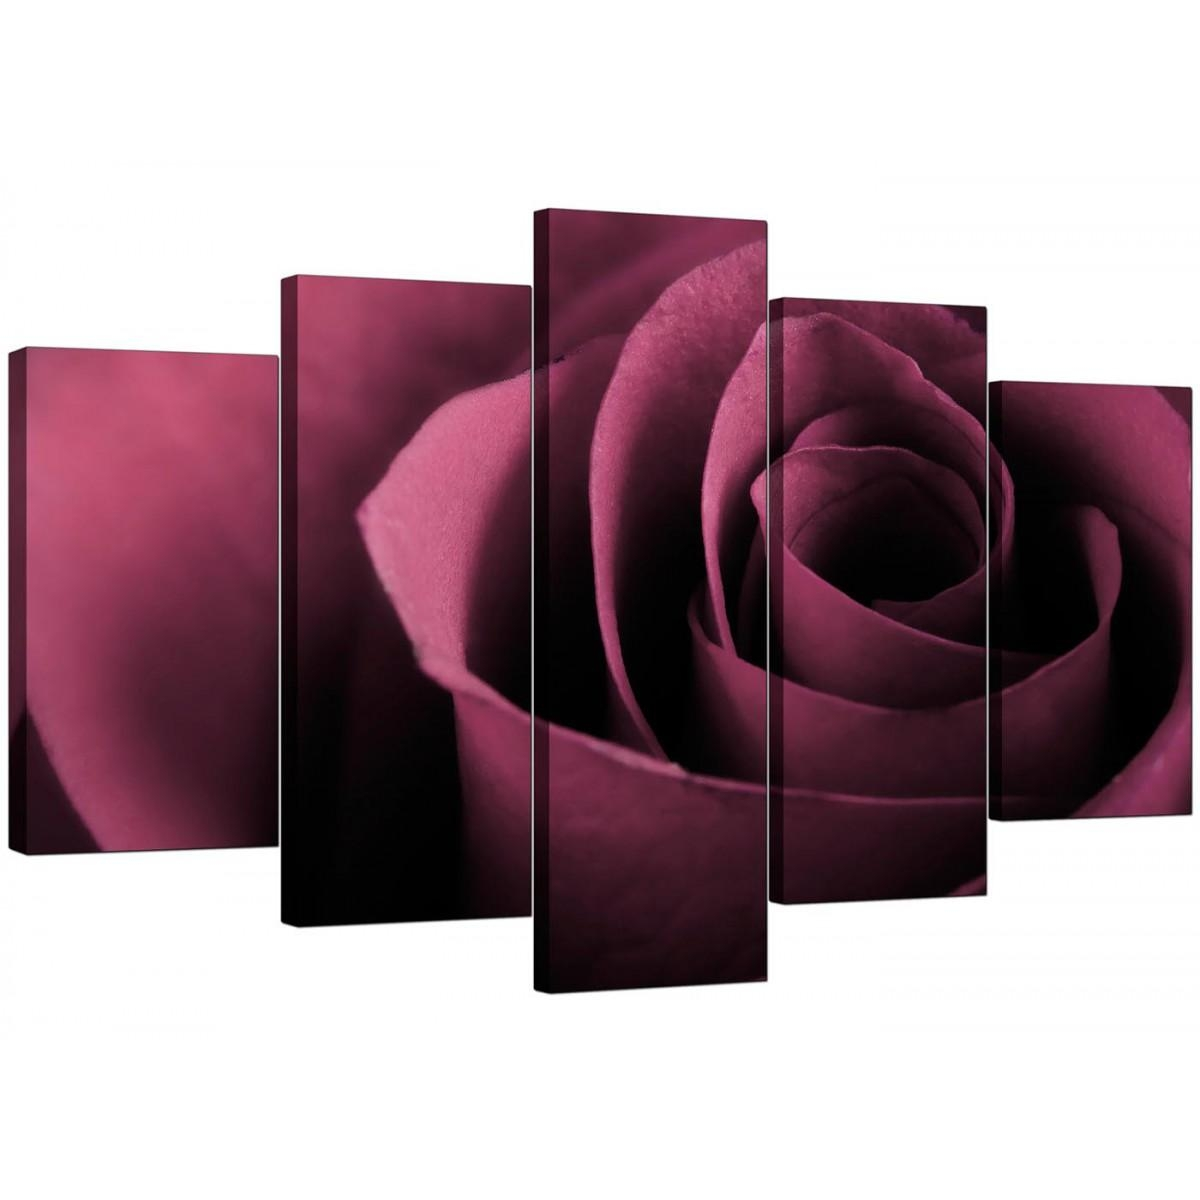 Extra Large Rose Canvas Wall Art Five Piece In Plum Throughout Plum Coloured Wall Art (View 8 of 20)